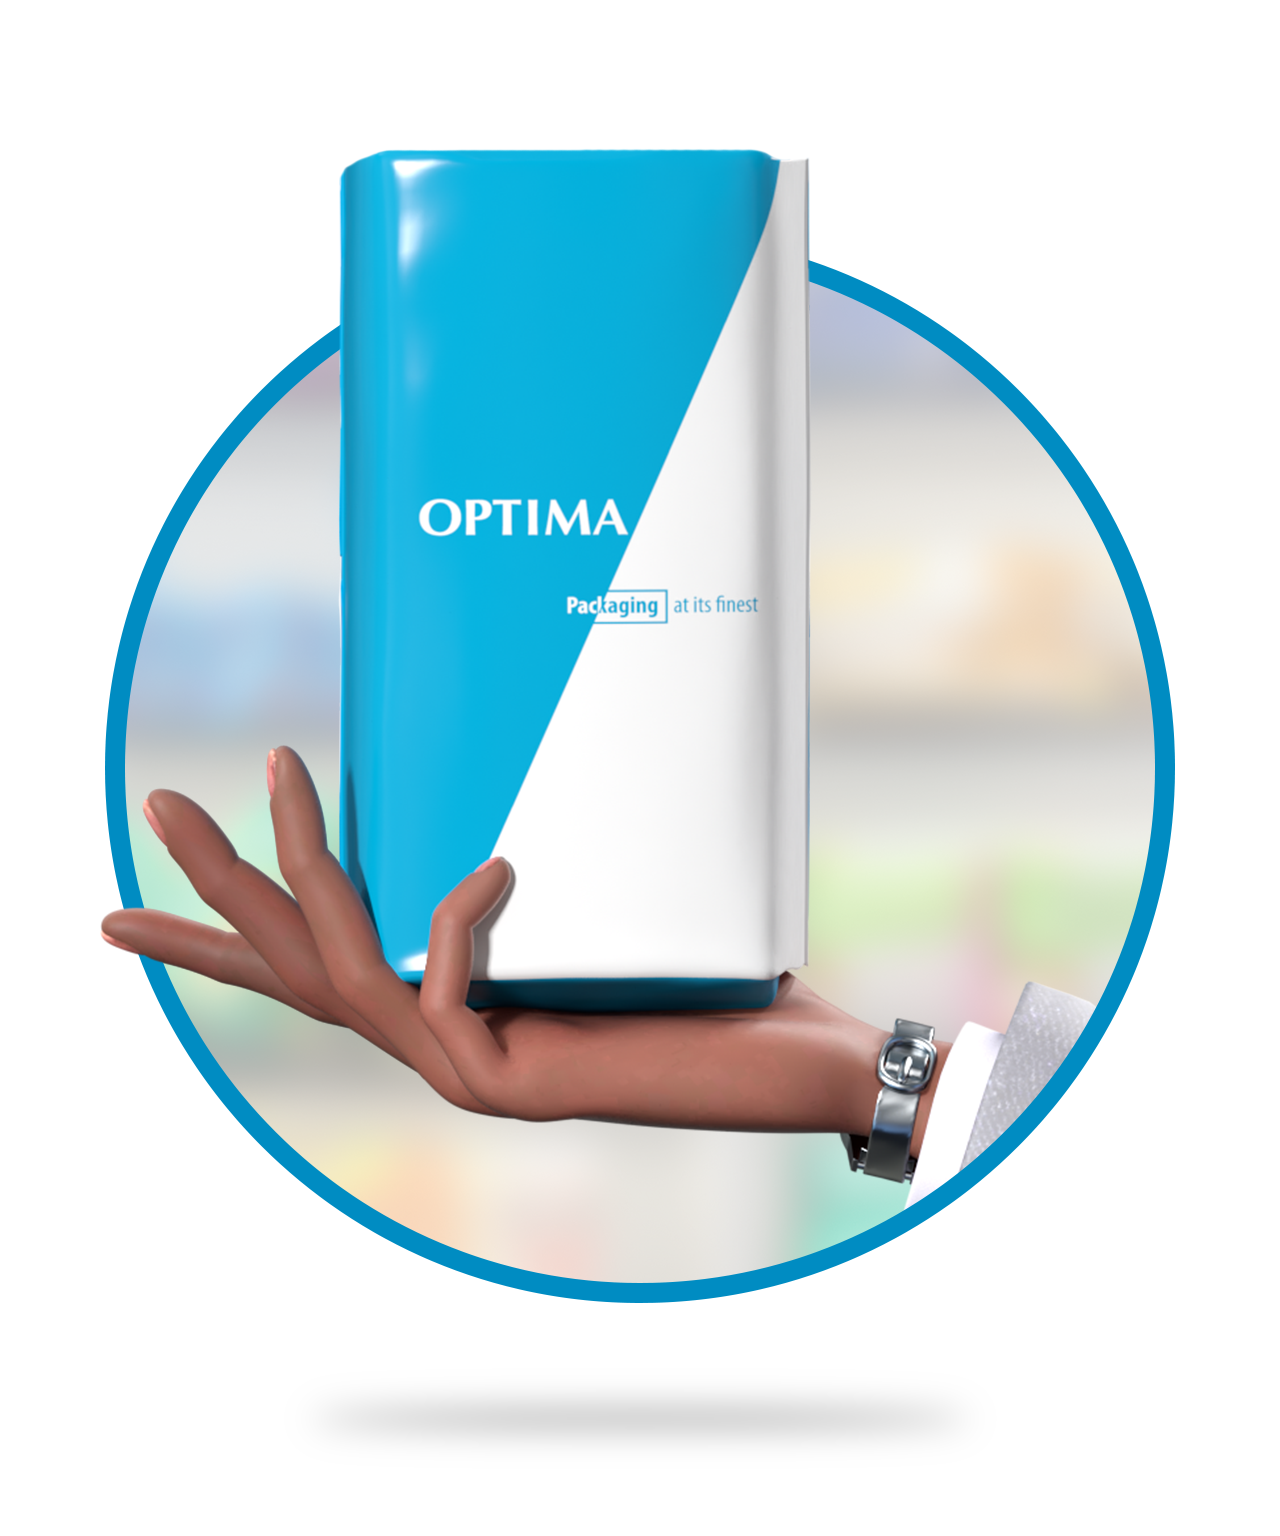 Convince your Customer with High Quality Packaging Solutions from OPTIMA